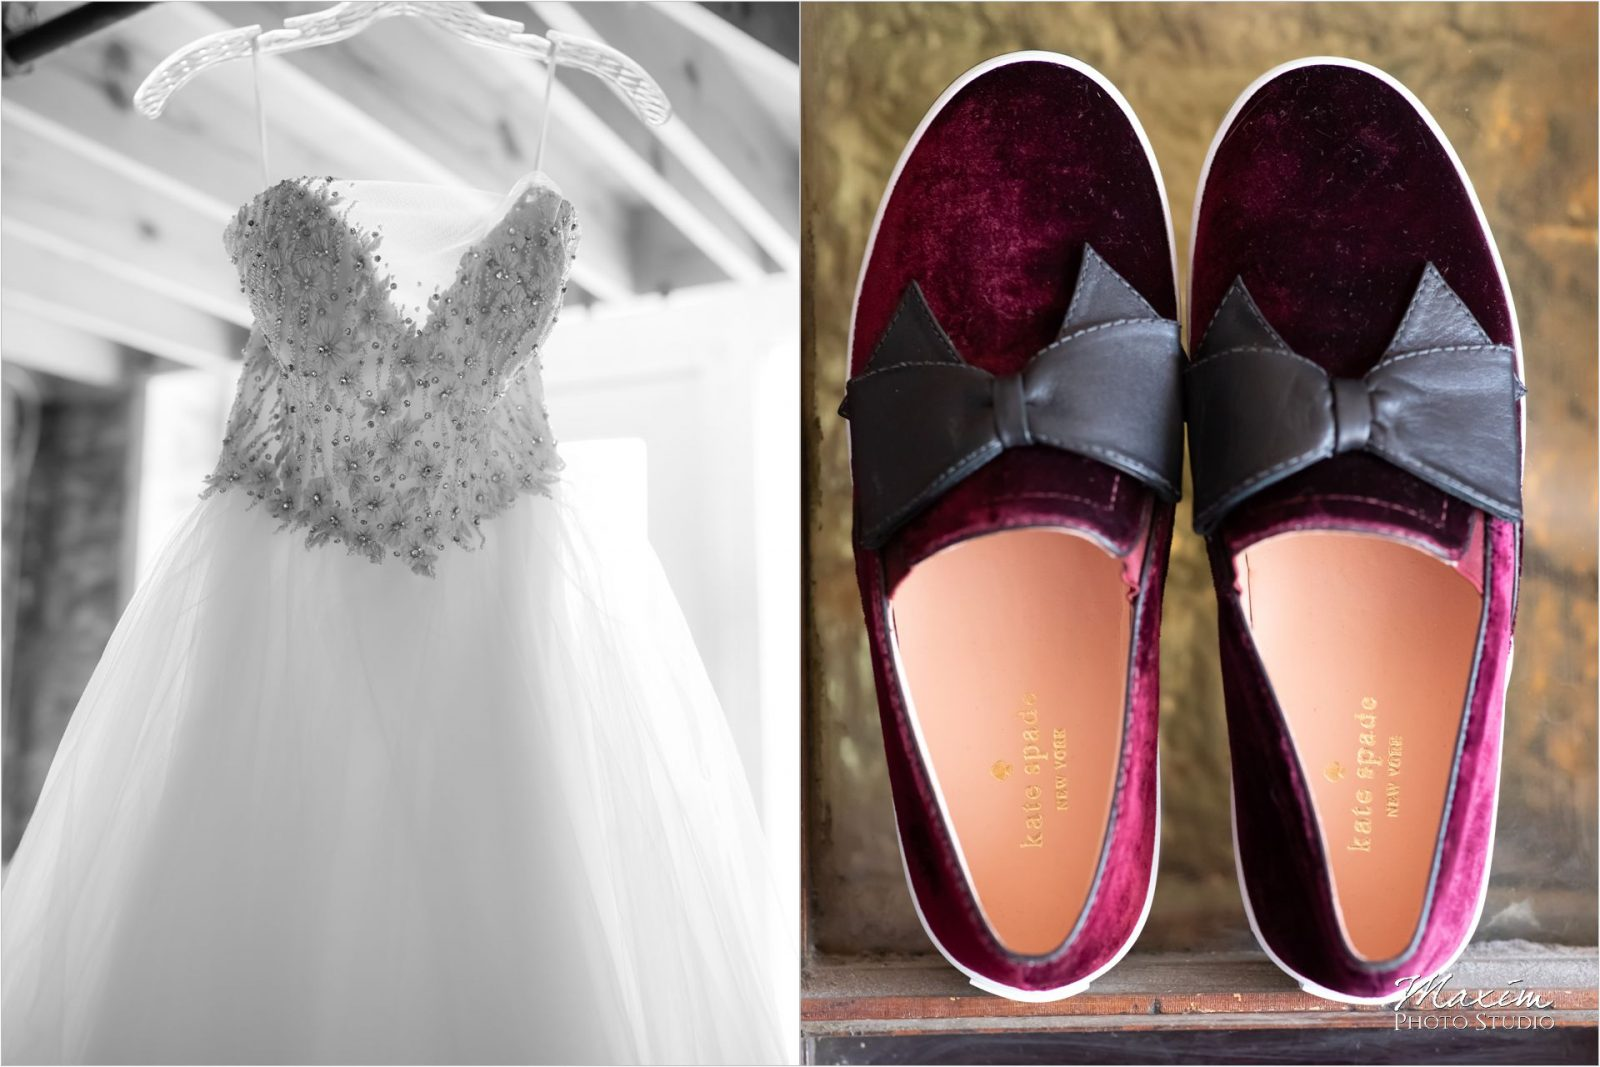 The Mockbee Cincinnati Wedding Shoes Dress